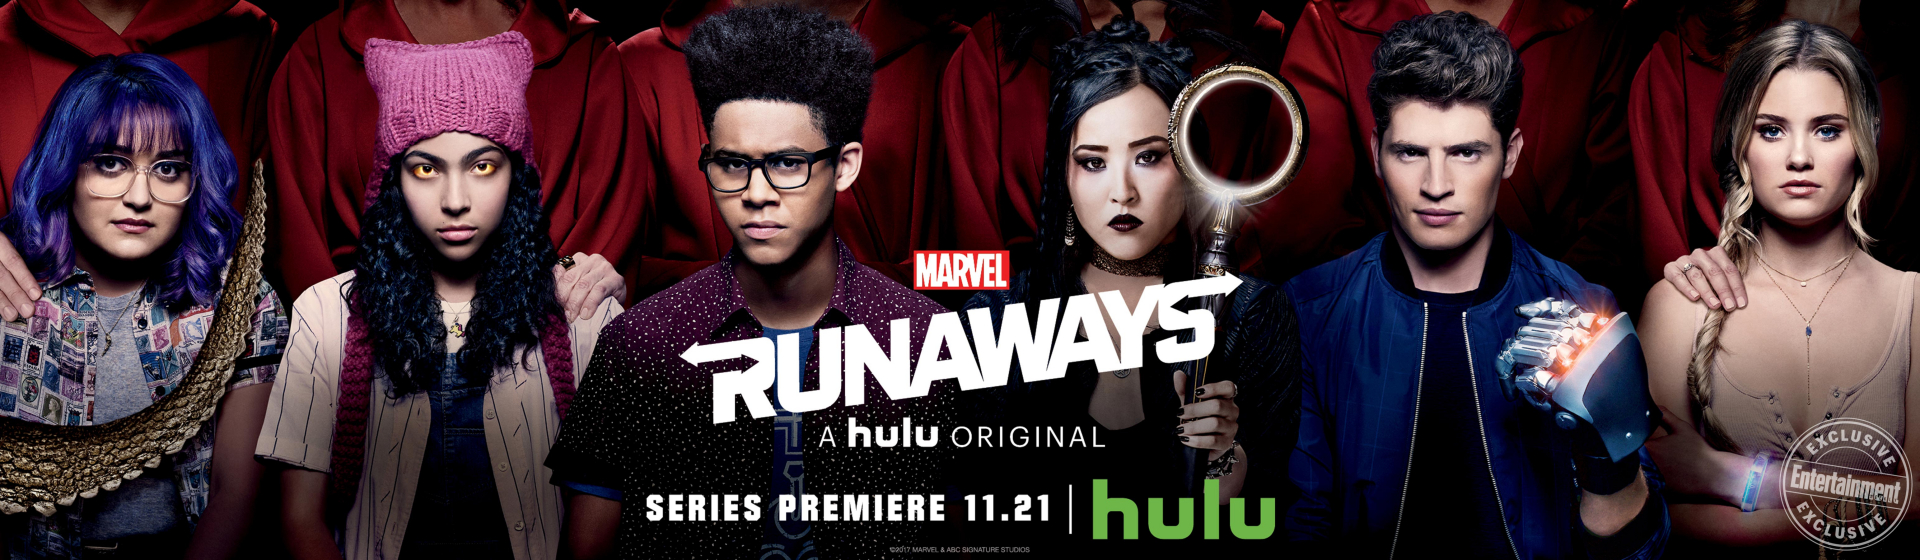 Runaways - Season 1 (New) - Mp4 x264 AC3 1080p Torrent